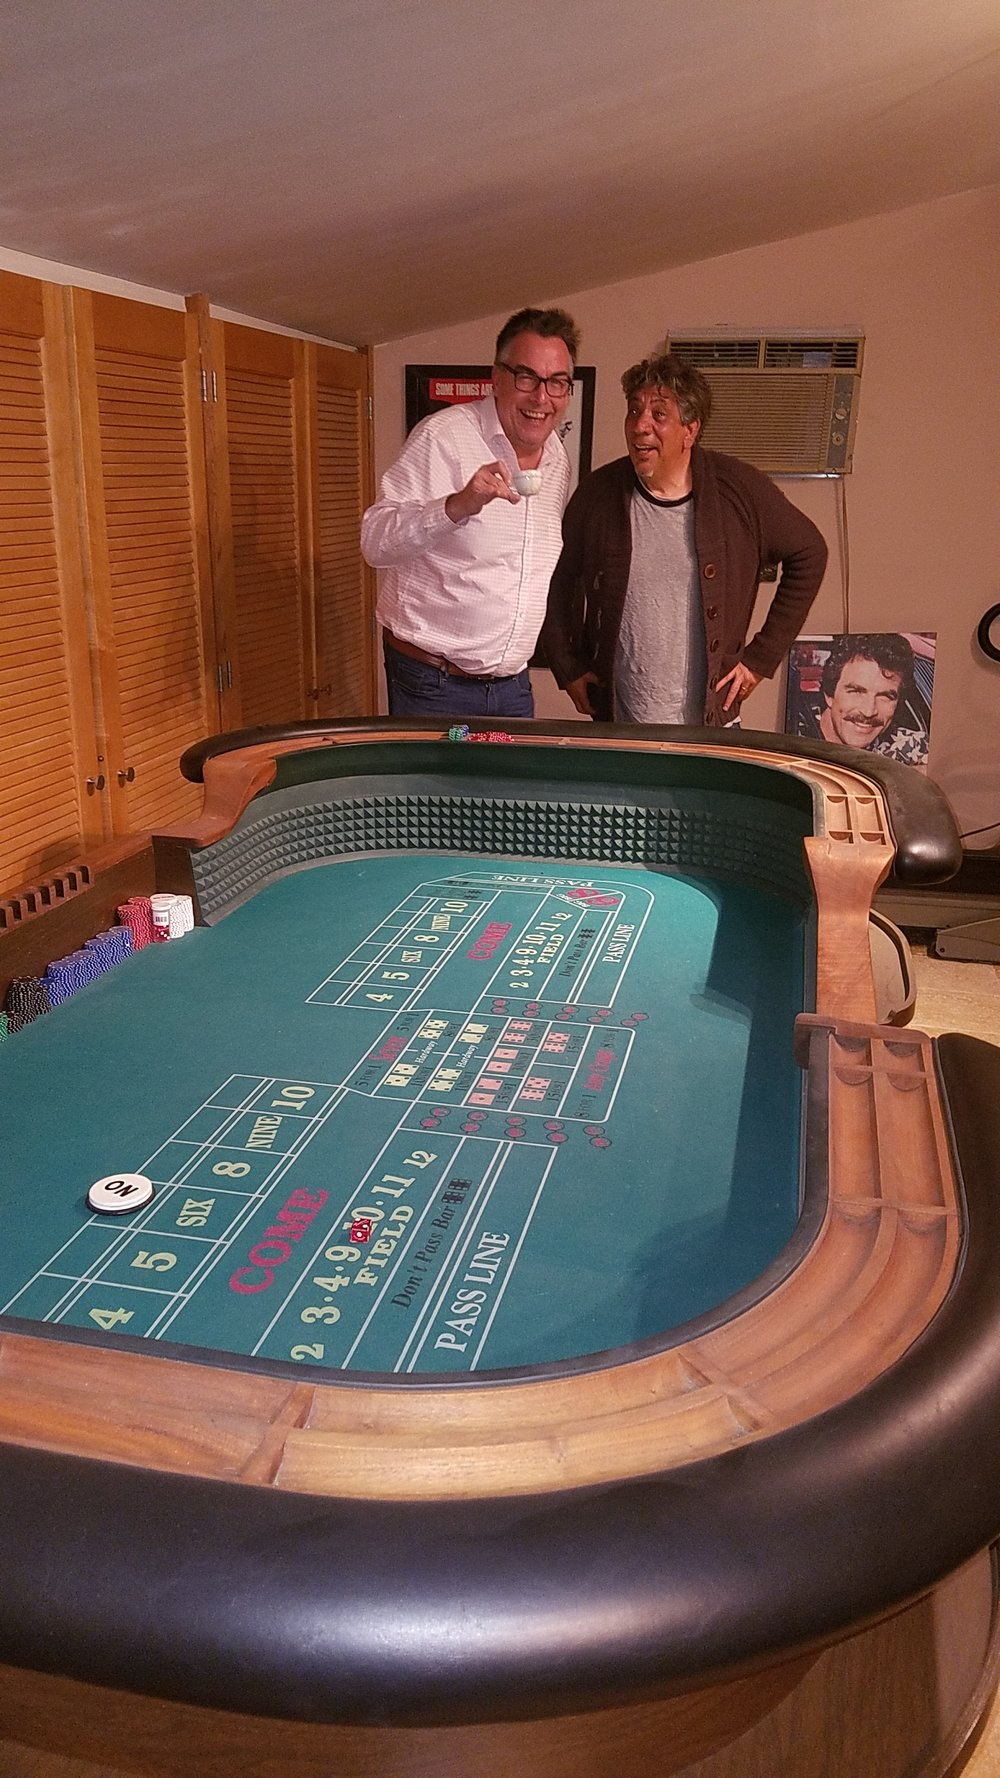 Shooting Craps with a Horseman